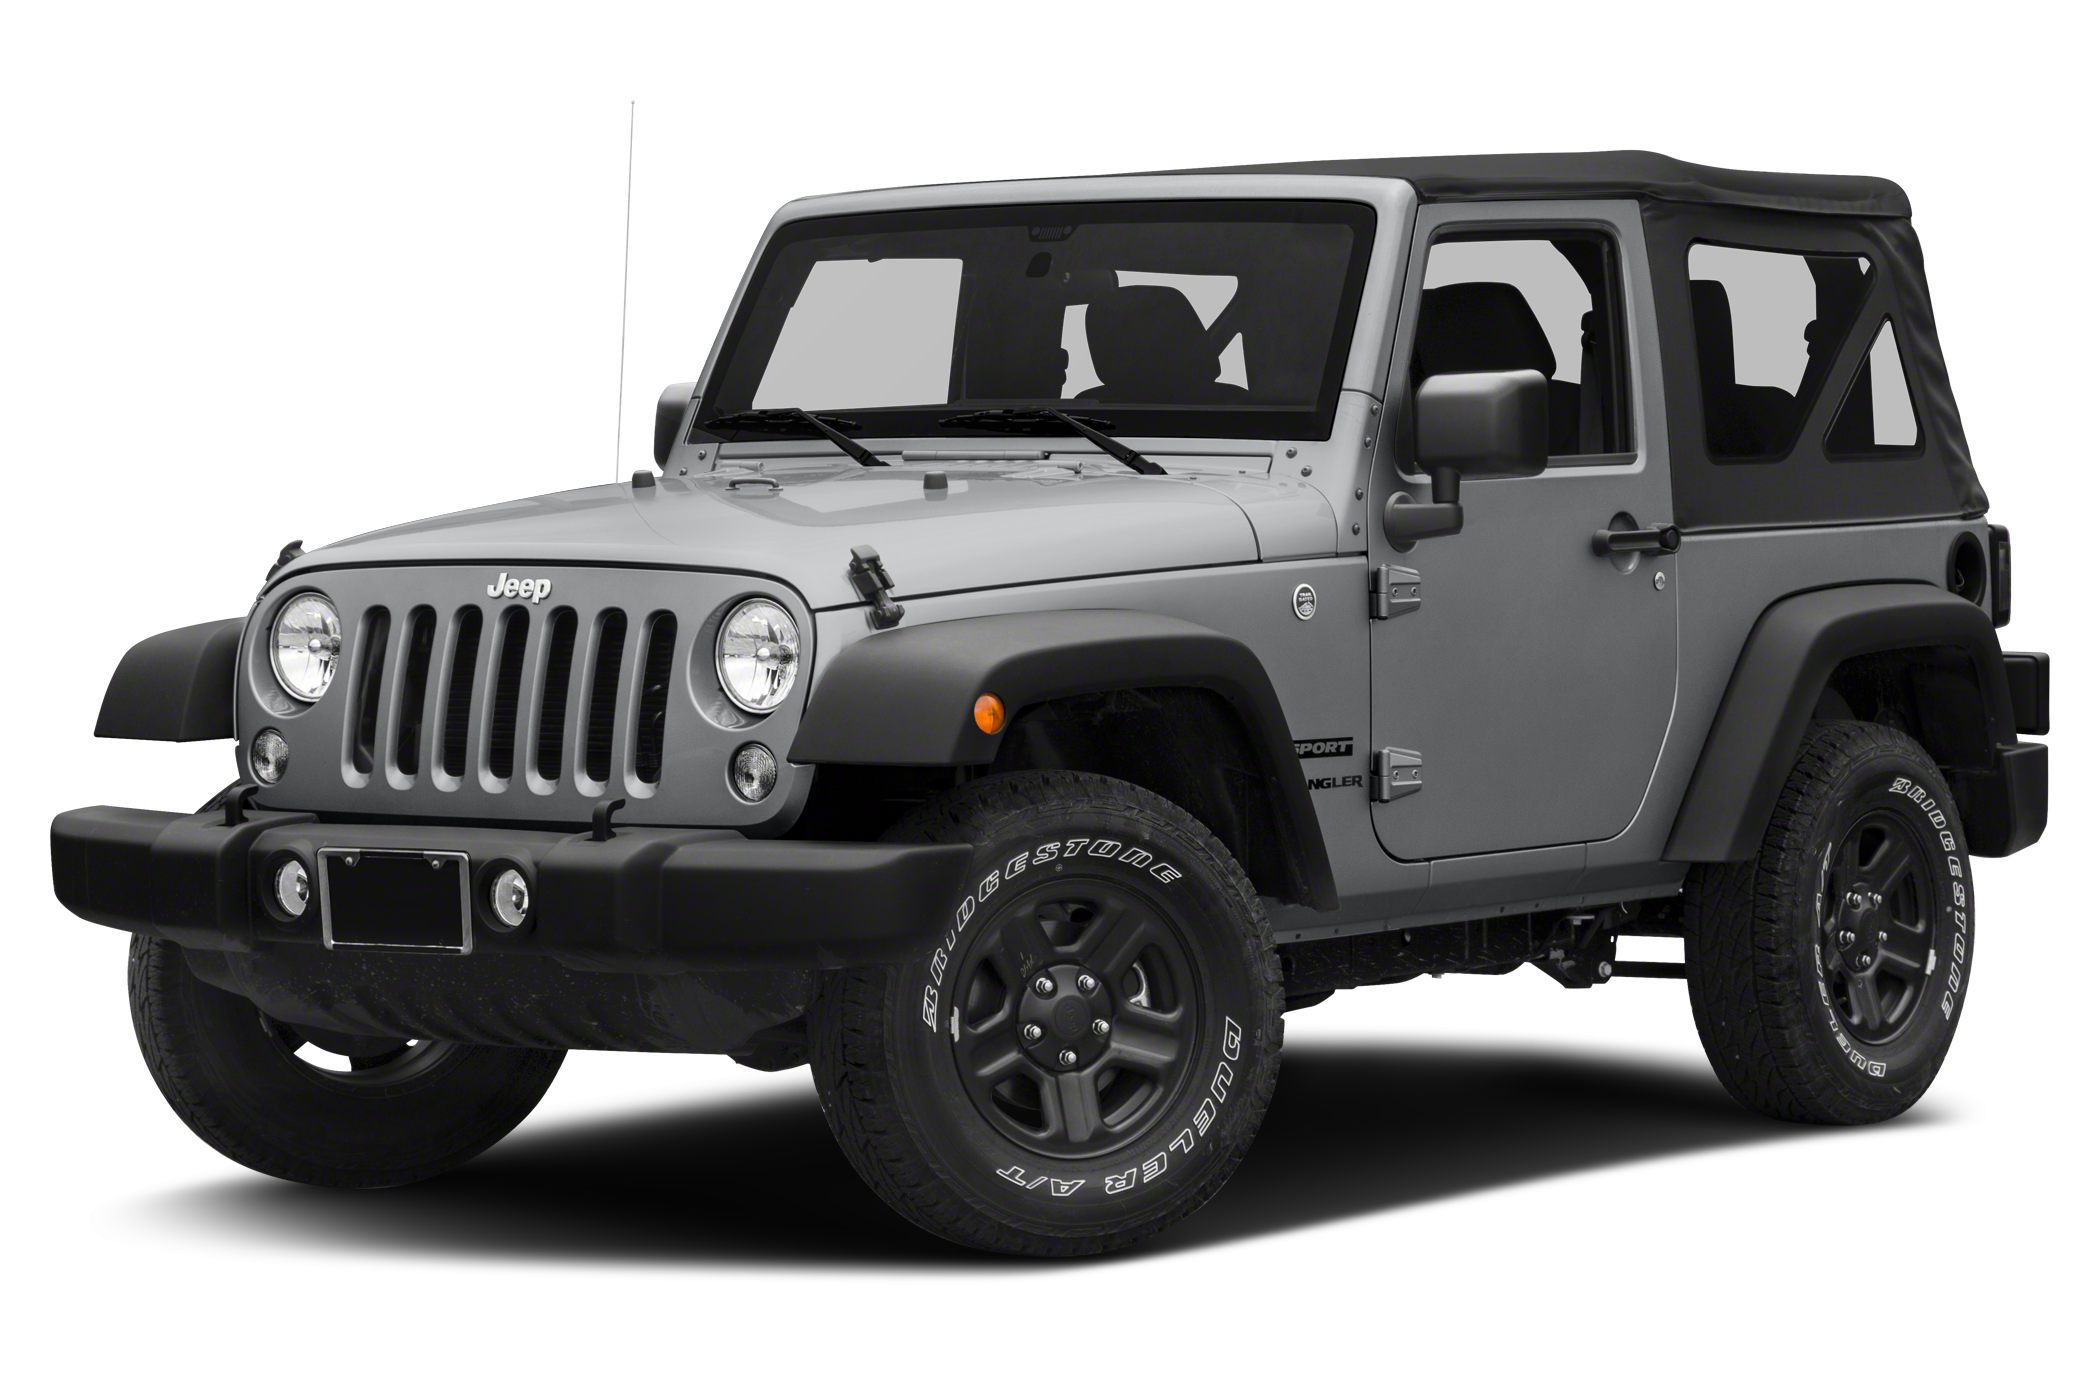 2018 Jeep Wrangler Color Options >> See 2018 Jeep Wrangler Color Options Carsdirect